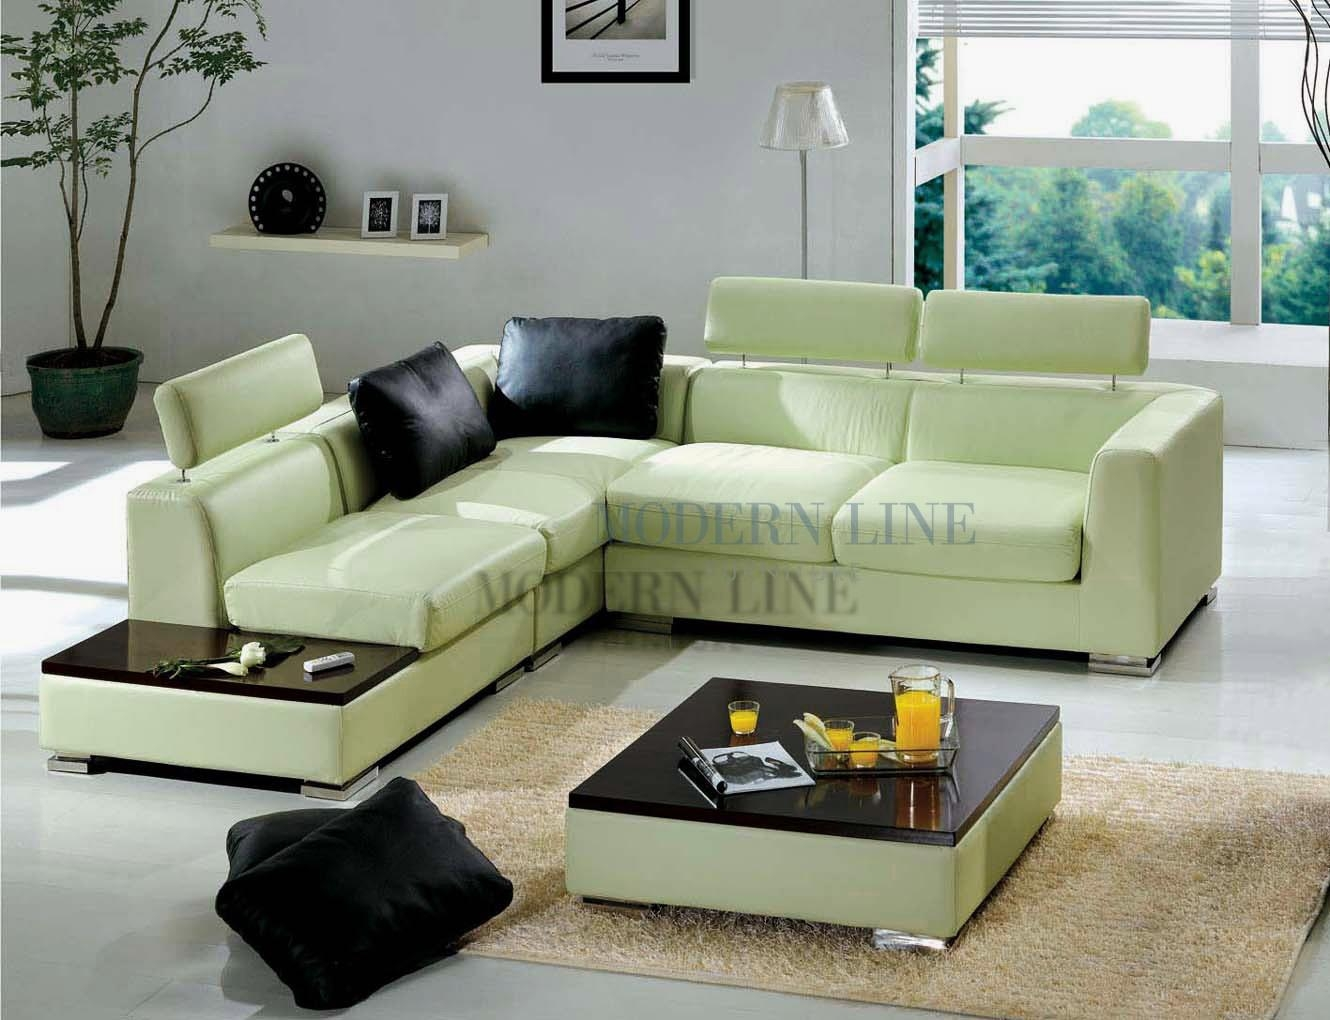 Modern Line Furniture – Commercial Furniture – Custom Made With Regard To Green Leather Sectional Sofas (Image 14 of 20)